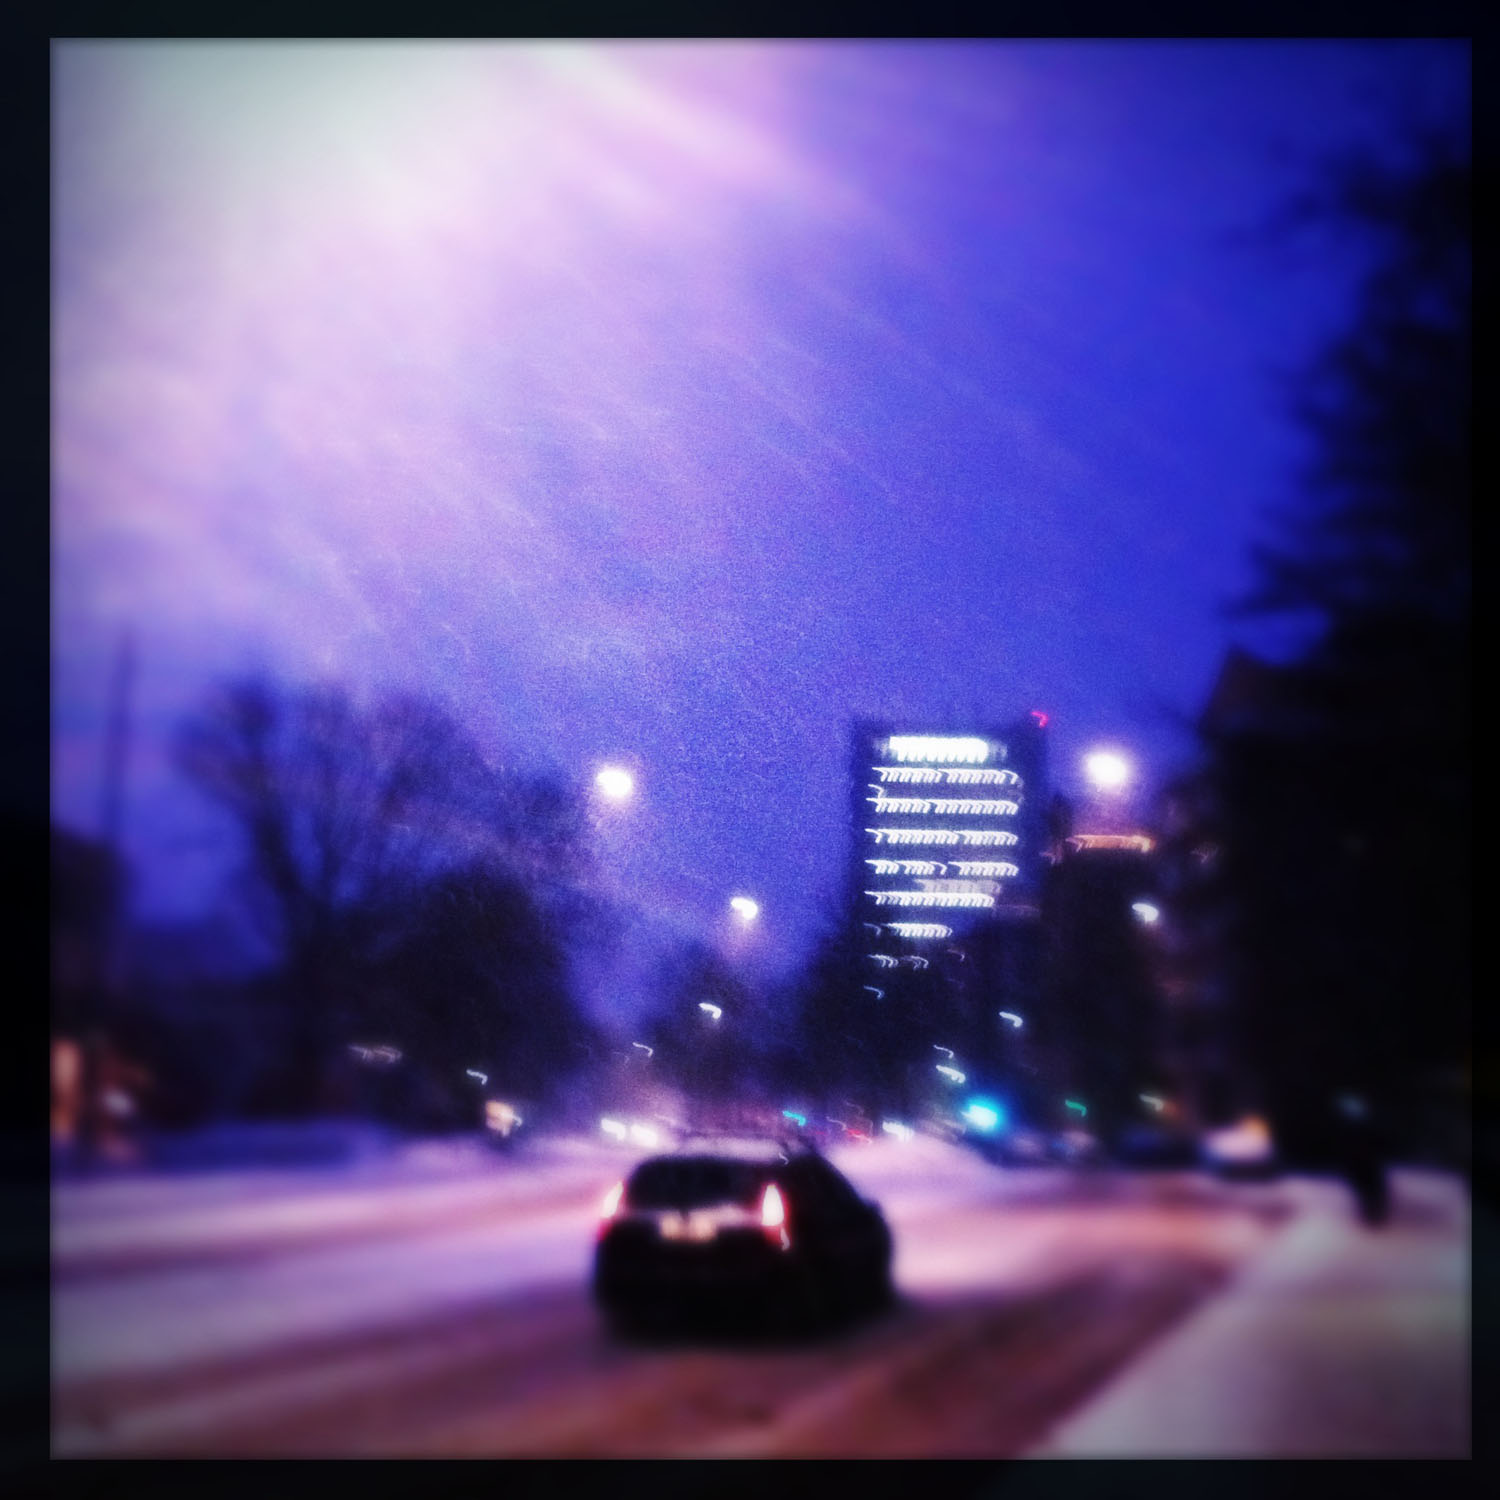 iPhone photography: Going Home